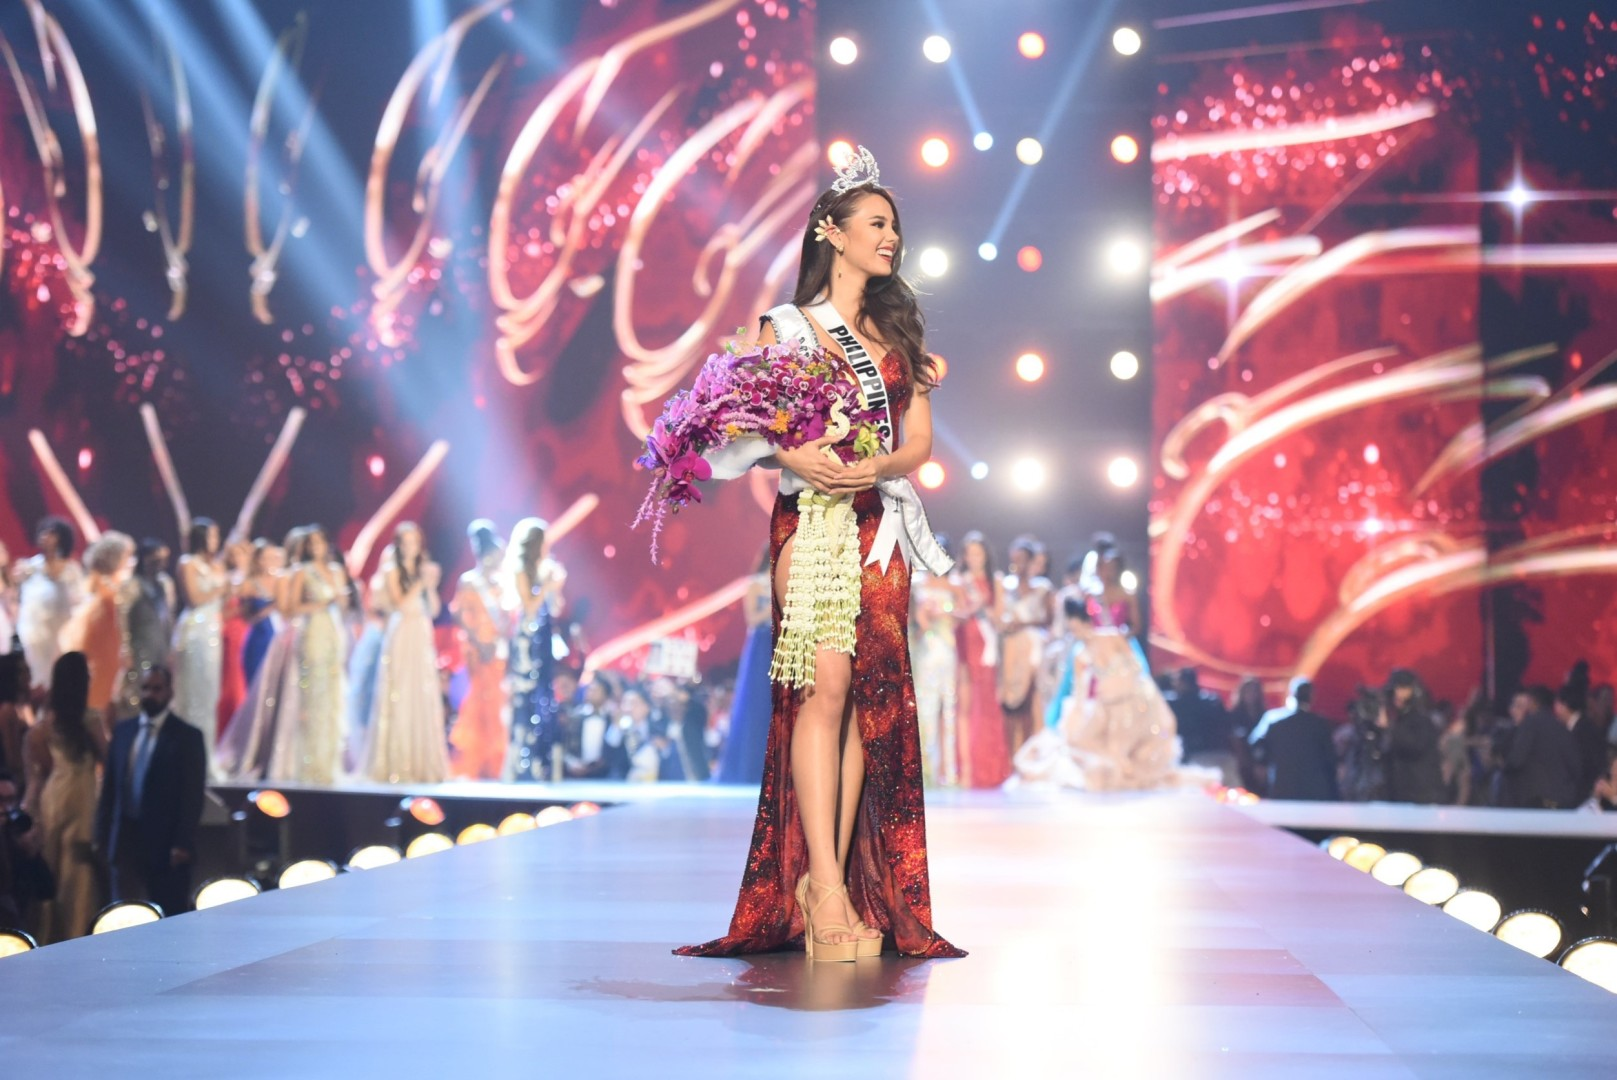 5 reasons why Miss Philippines Catriona Gray deserves her